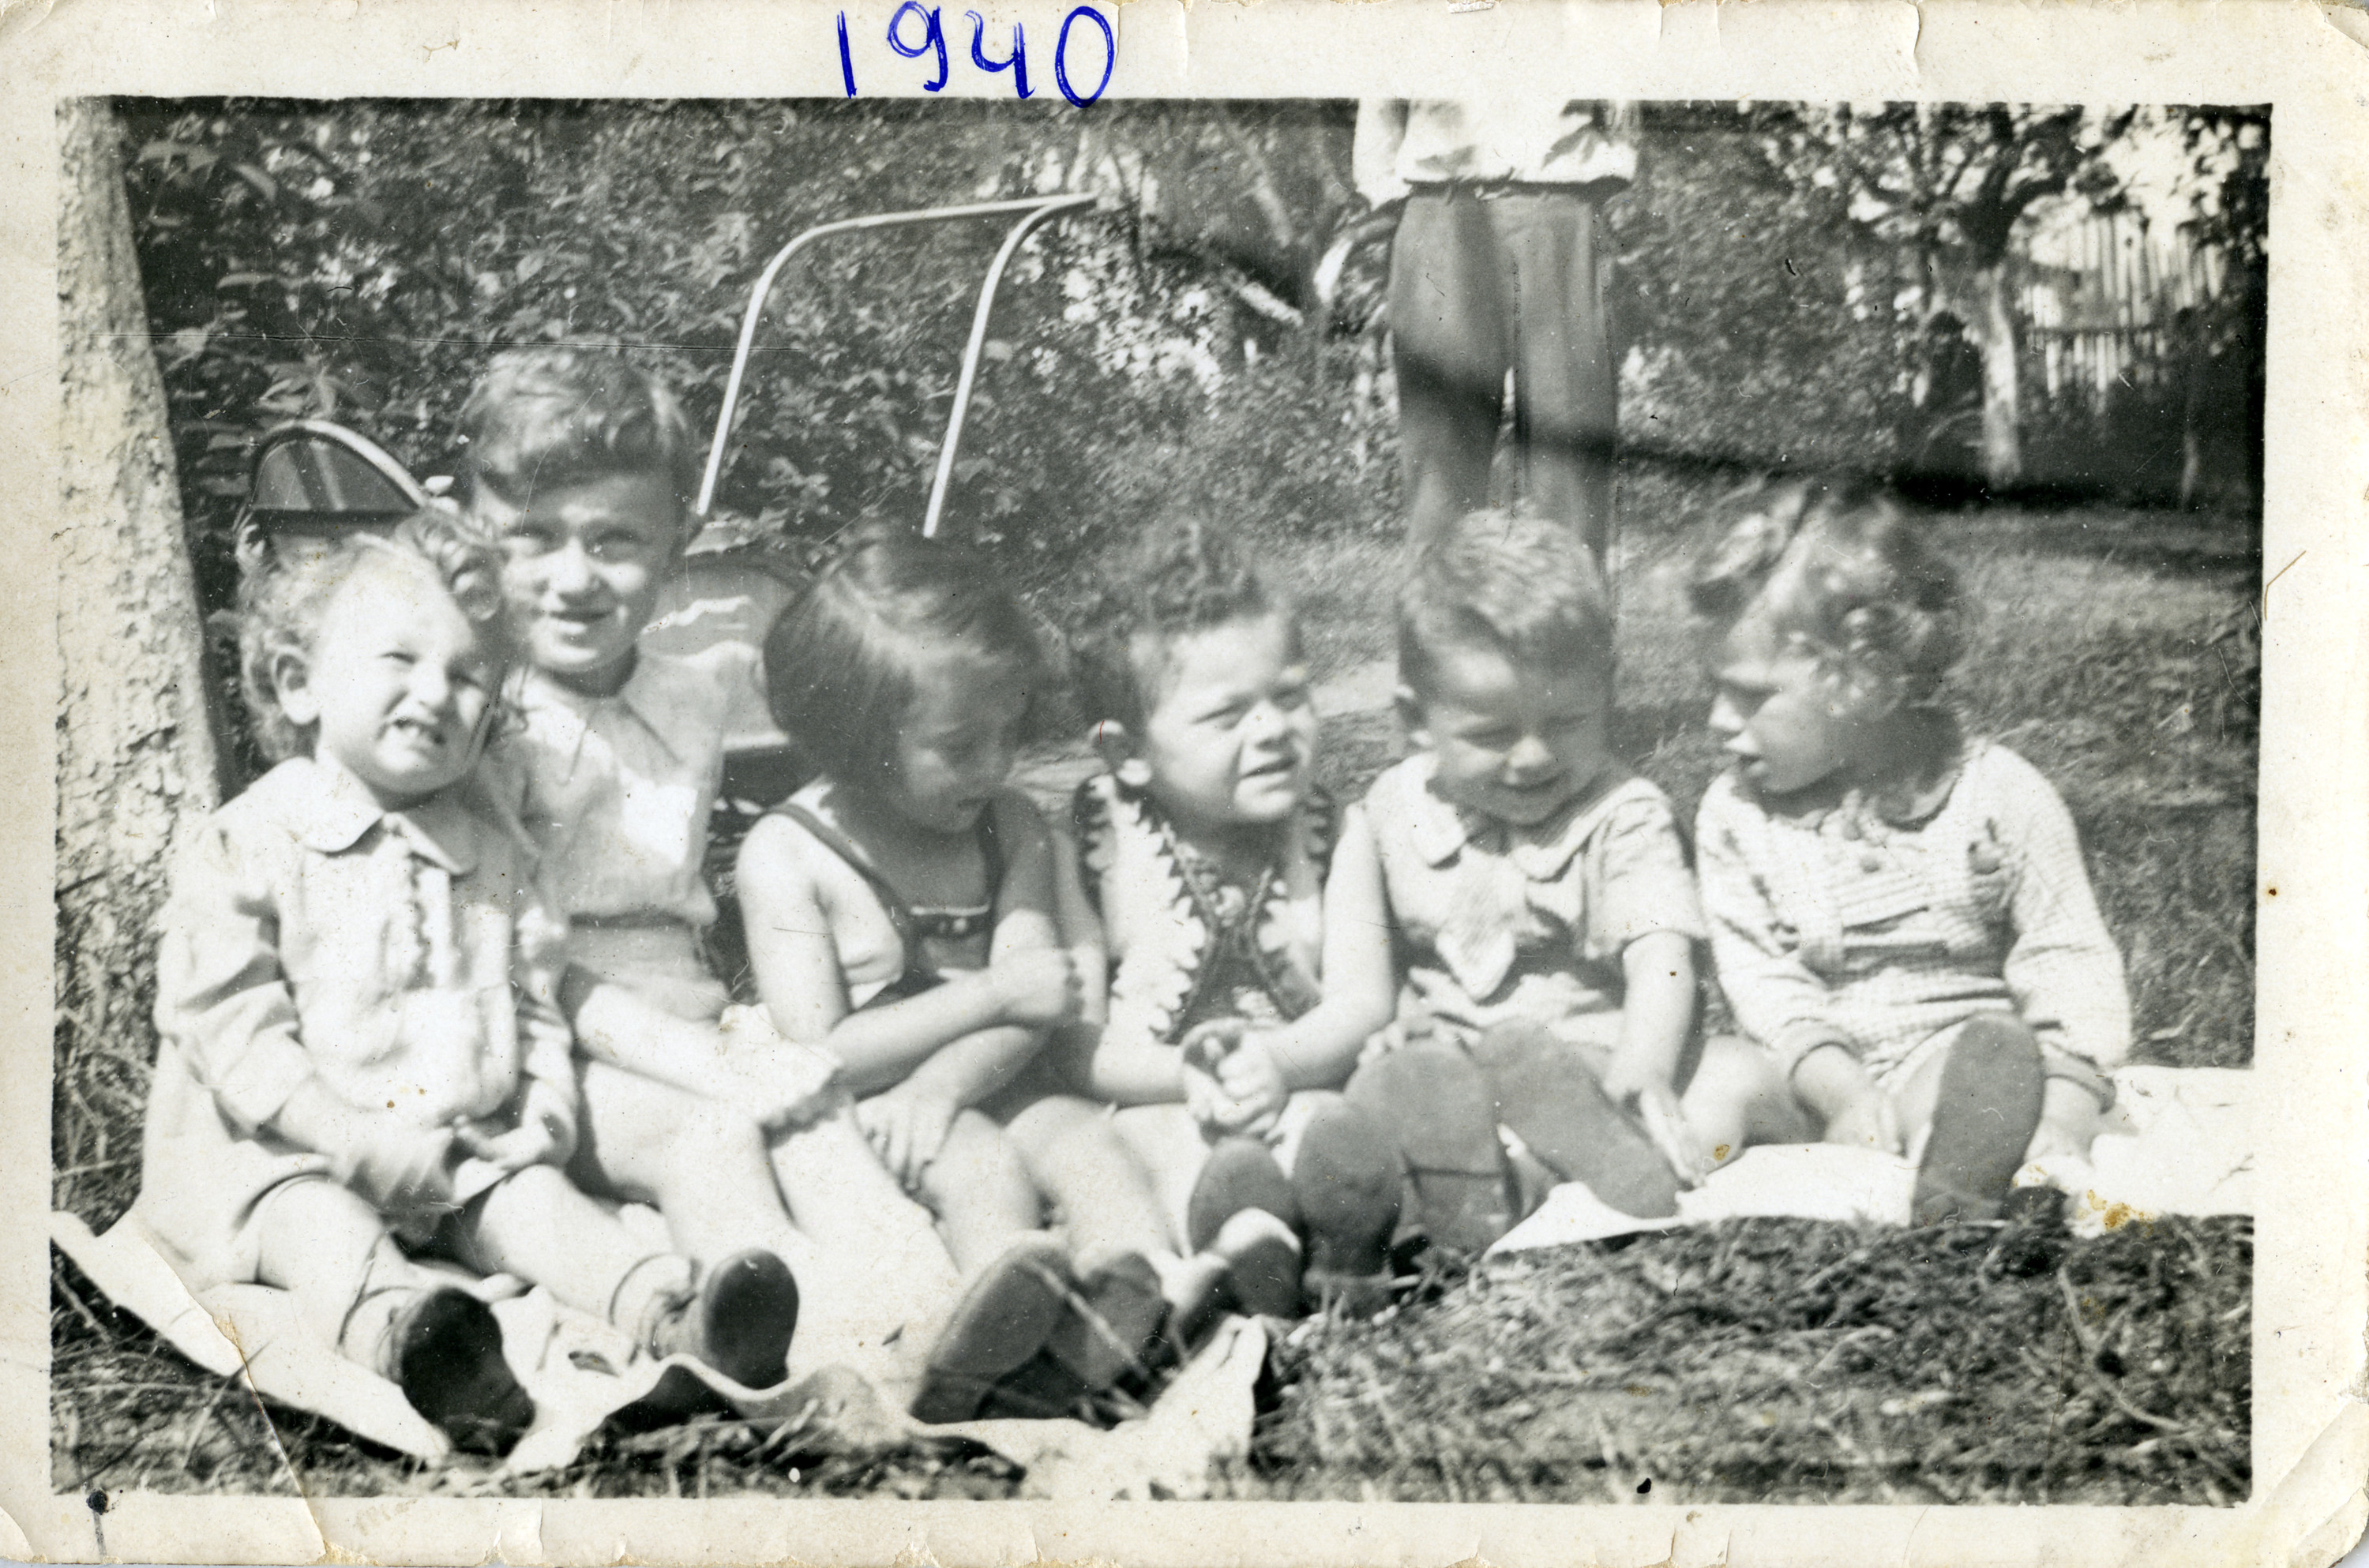 A group of toddlers sit on the grass at a birthday party.  Among those pictured are Leah Alterman (third from left), and Barch Shafir (second from right).